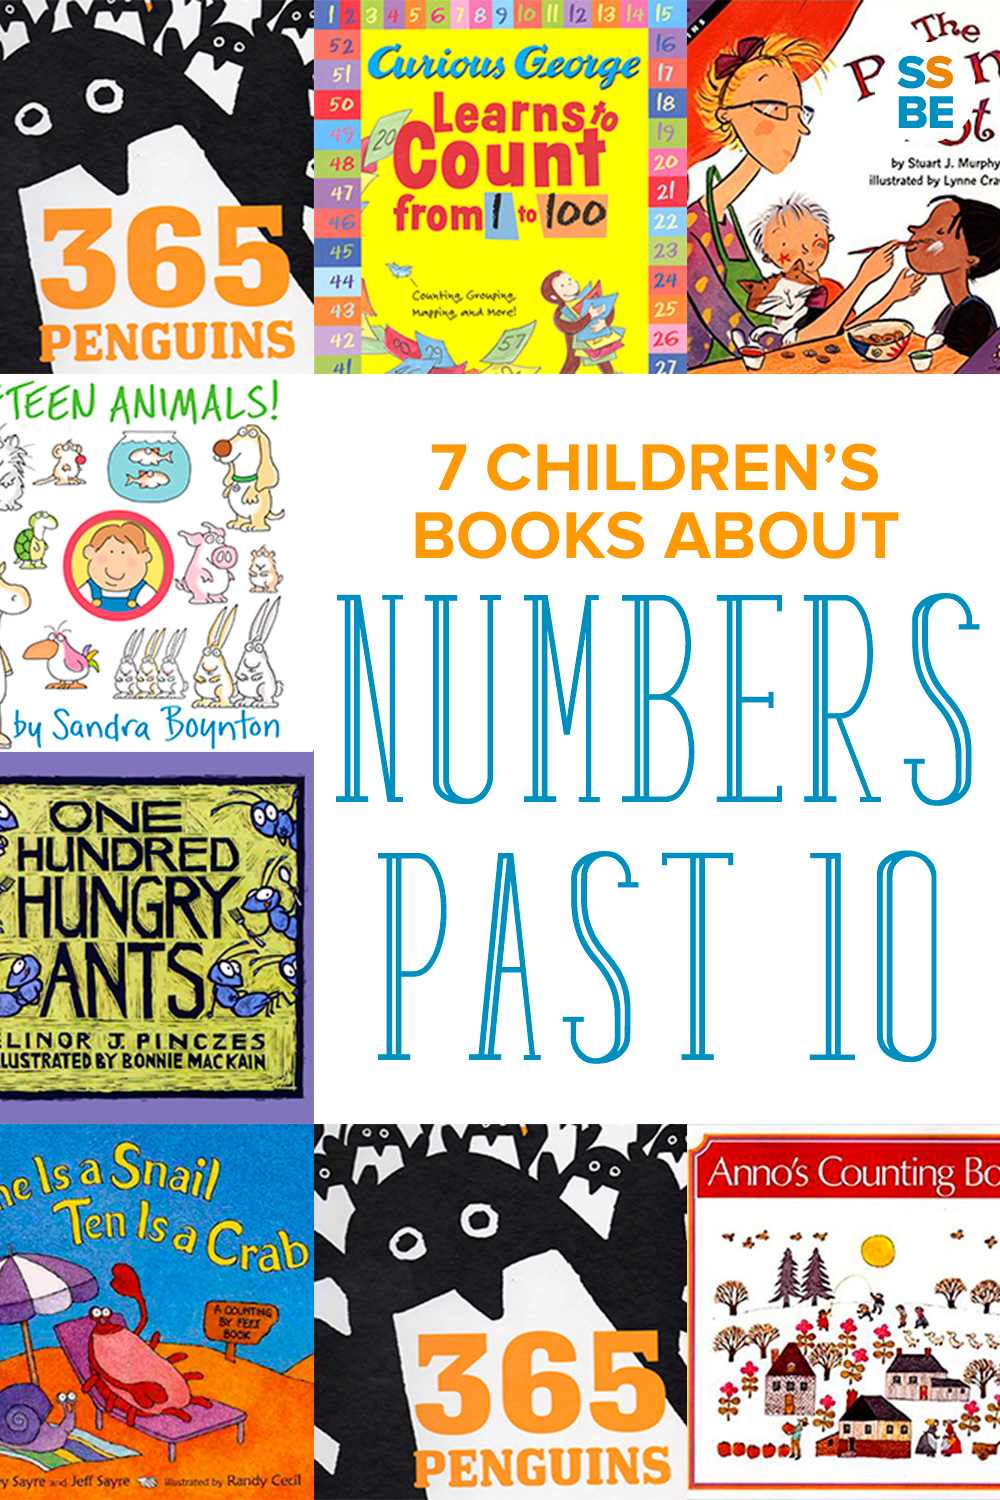 Is your child ready to count to number past 10? These 7 fun children's books about numbers can help your child count to more than 10.